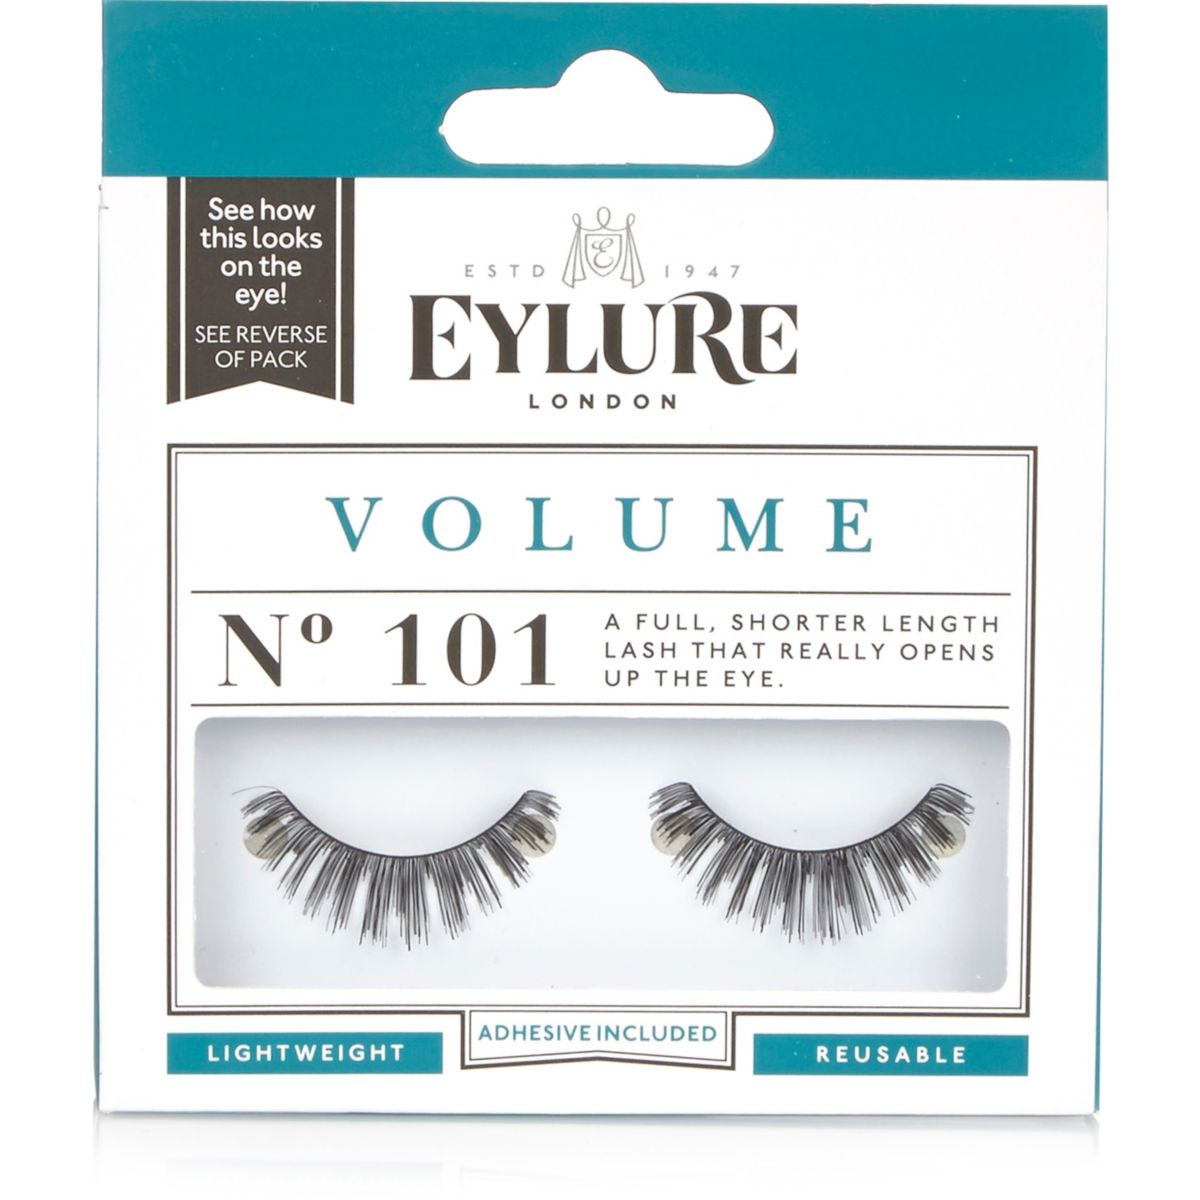 Eylure volume 101 eyelashes